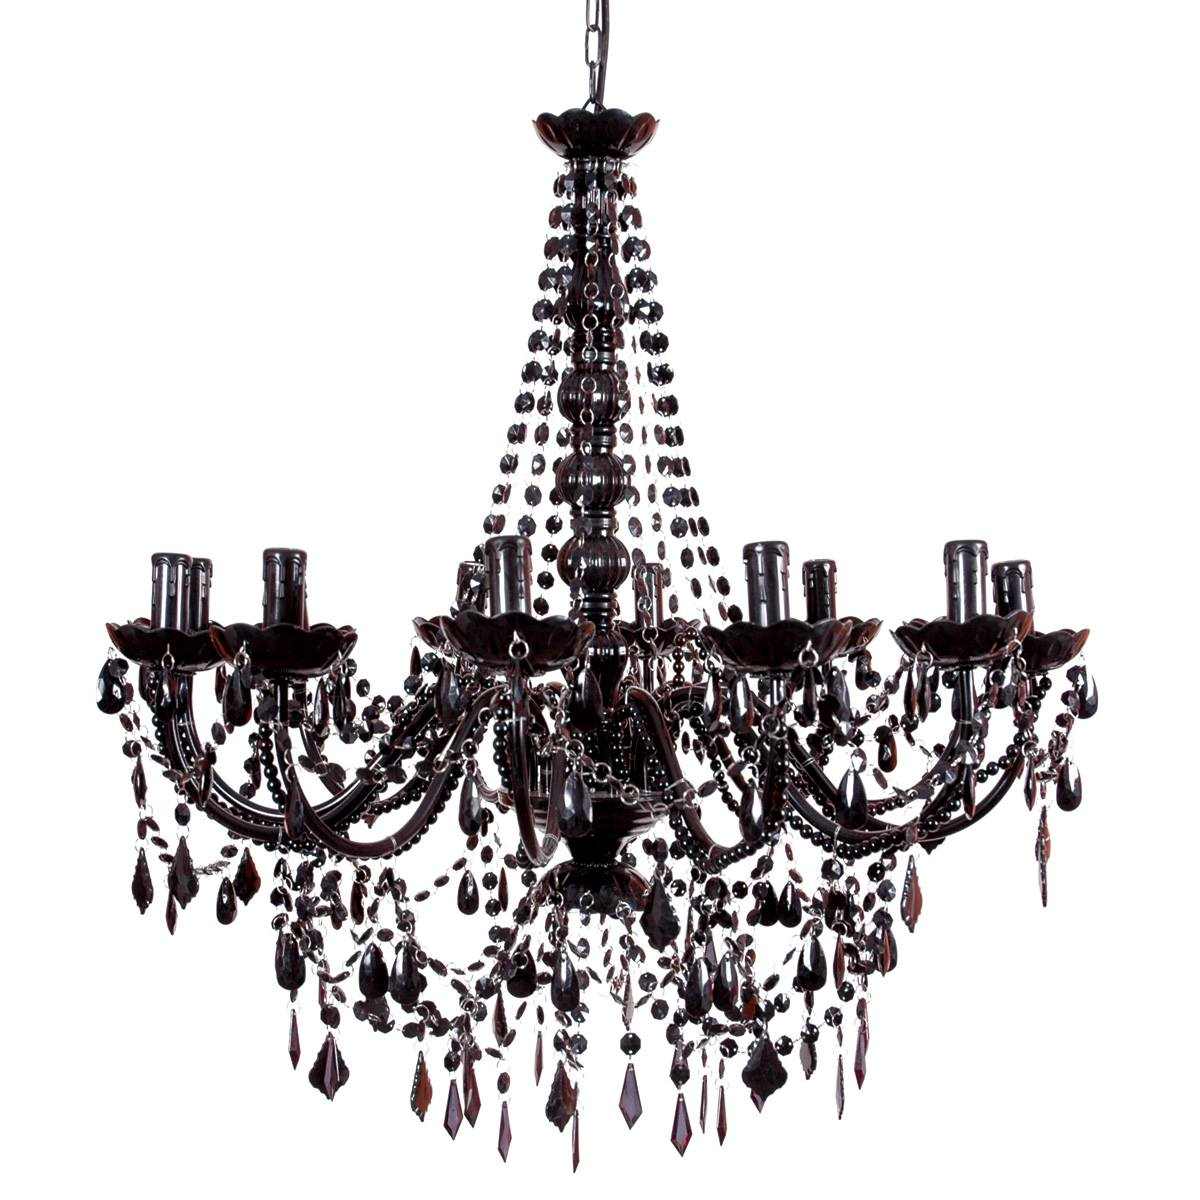 Chandeliers on Pinterest Chandeliers Black Chandelier  : v05umpf7nxdf from www.pinterest.com size 1200 x 1200 jpeg 133kB